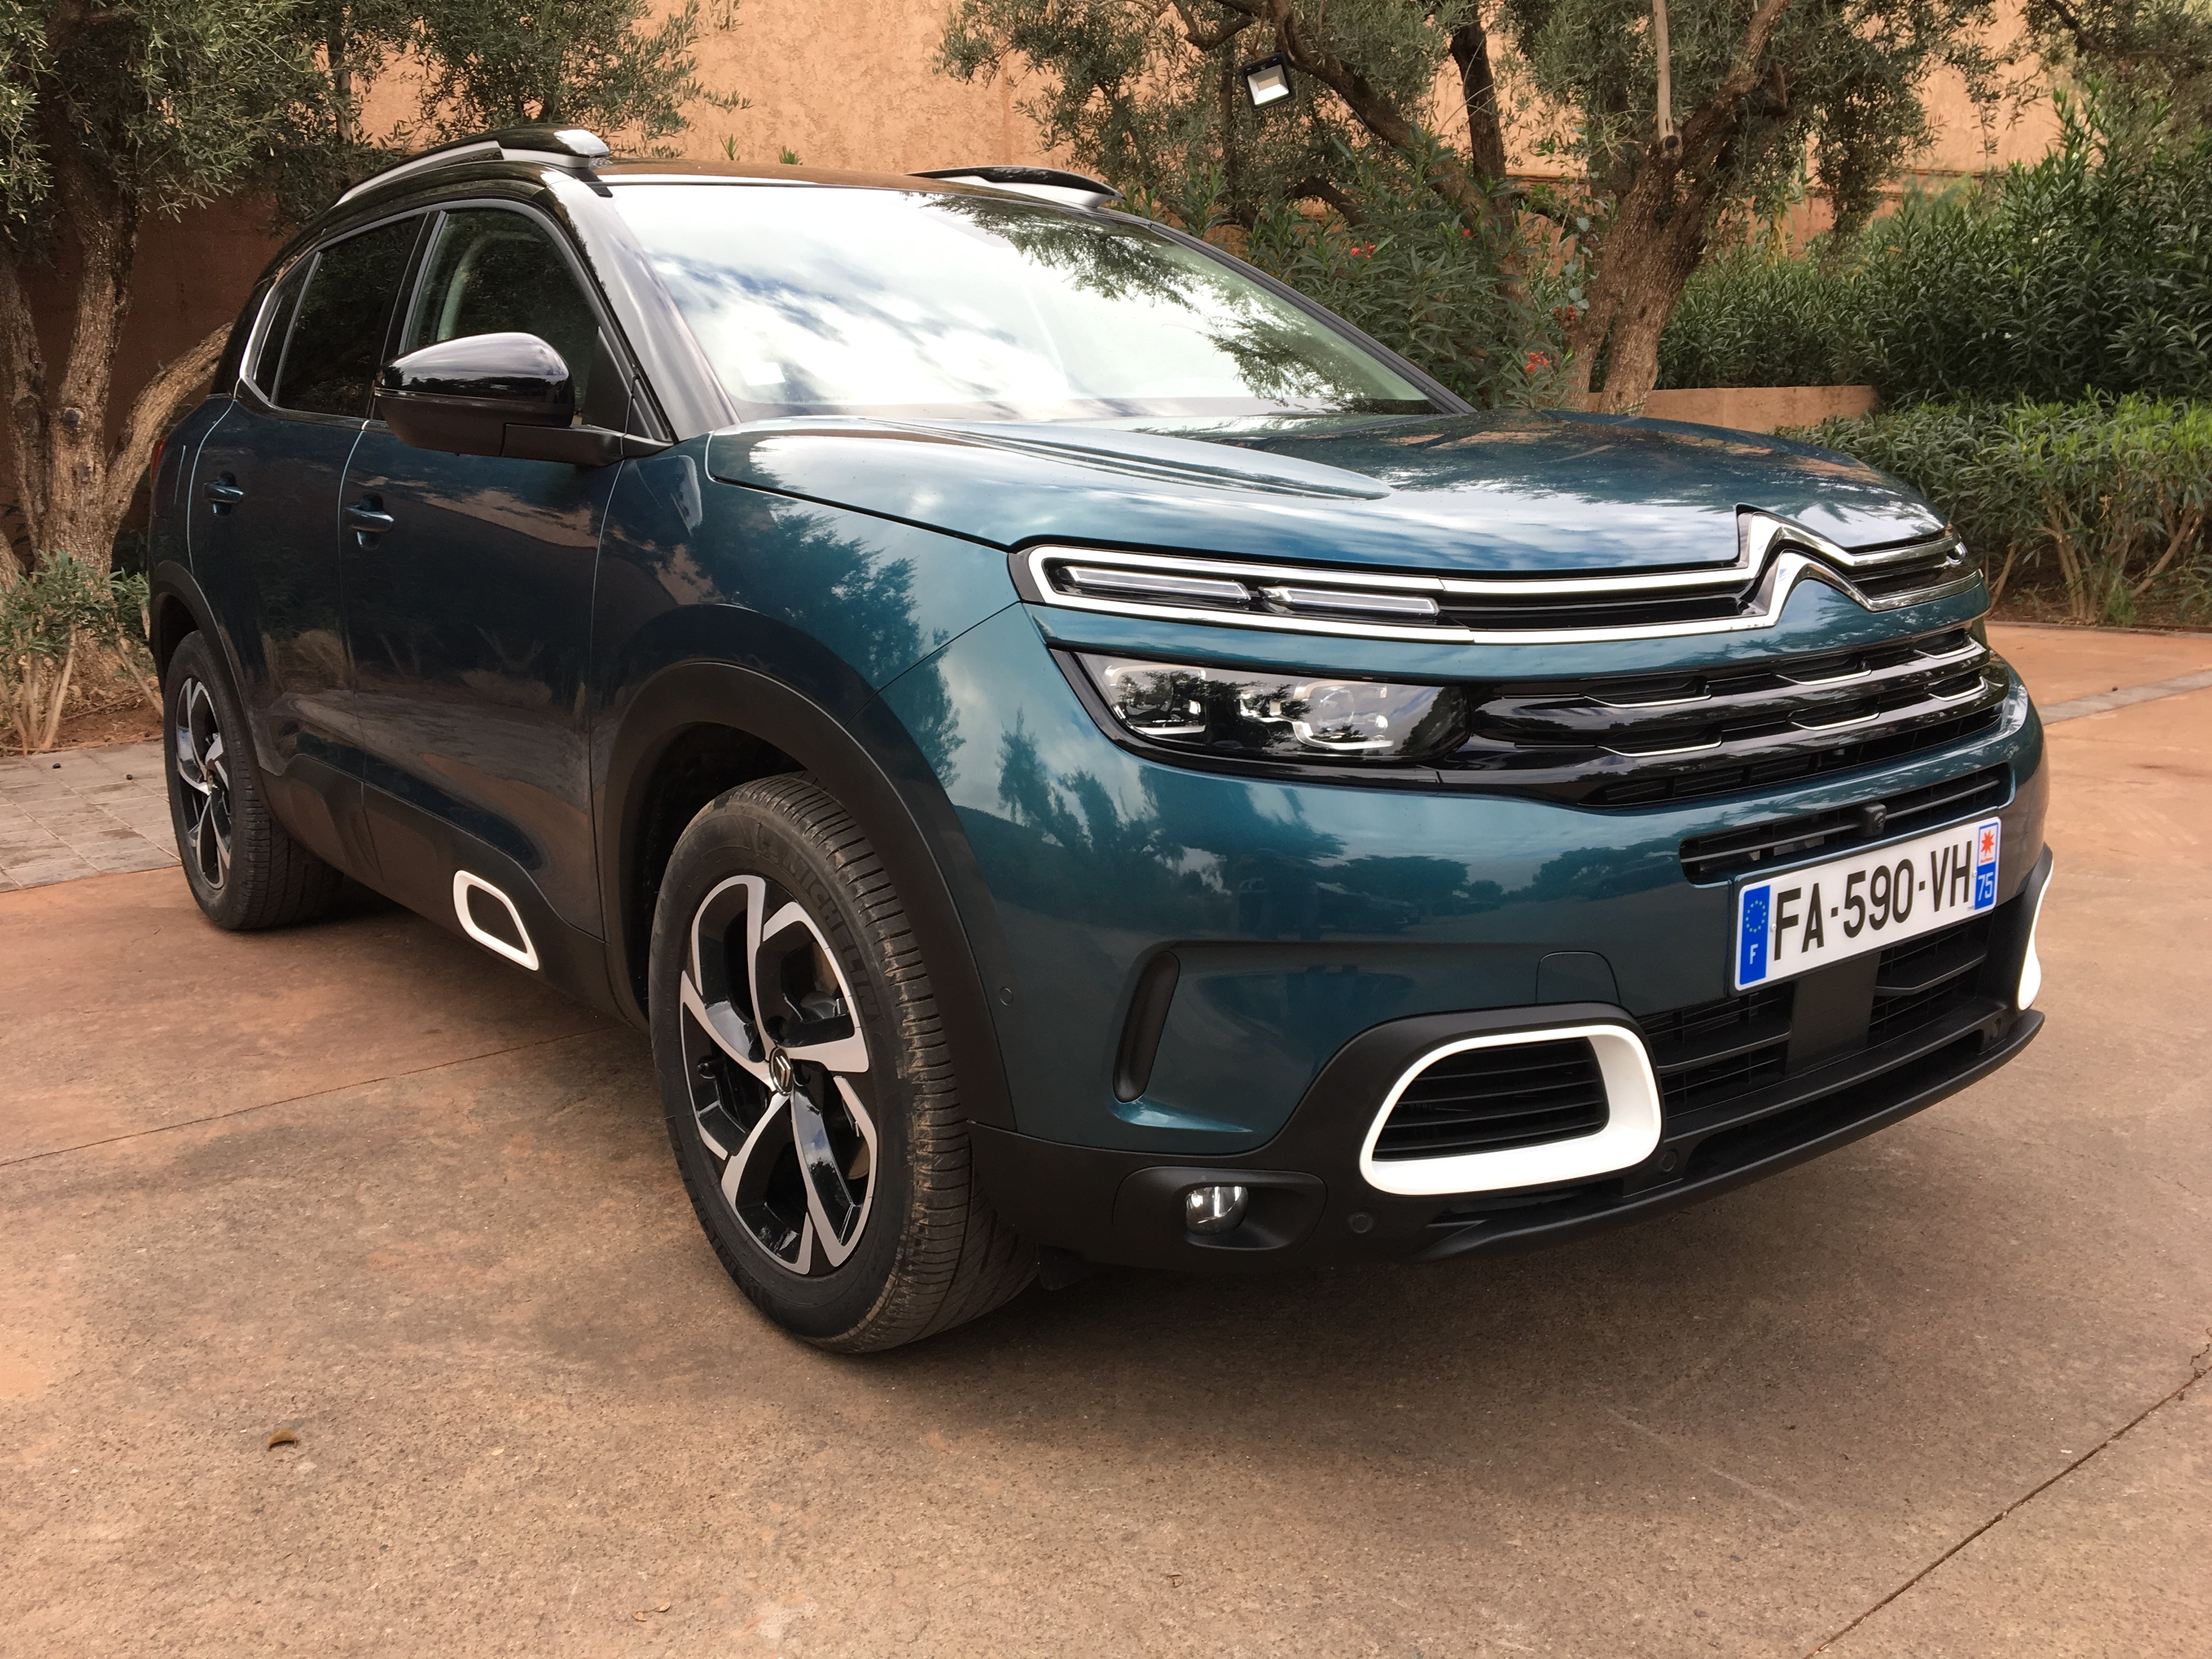 comparatif vid o citro n c5 aircross vs volkswagen tiguan premier duel du suv aux chevrons. Black Bedroom Furniture Sets. Home Design Ideas